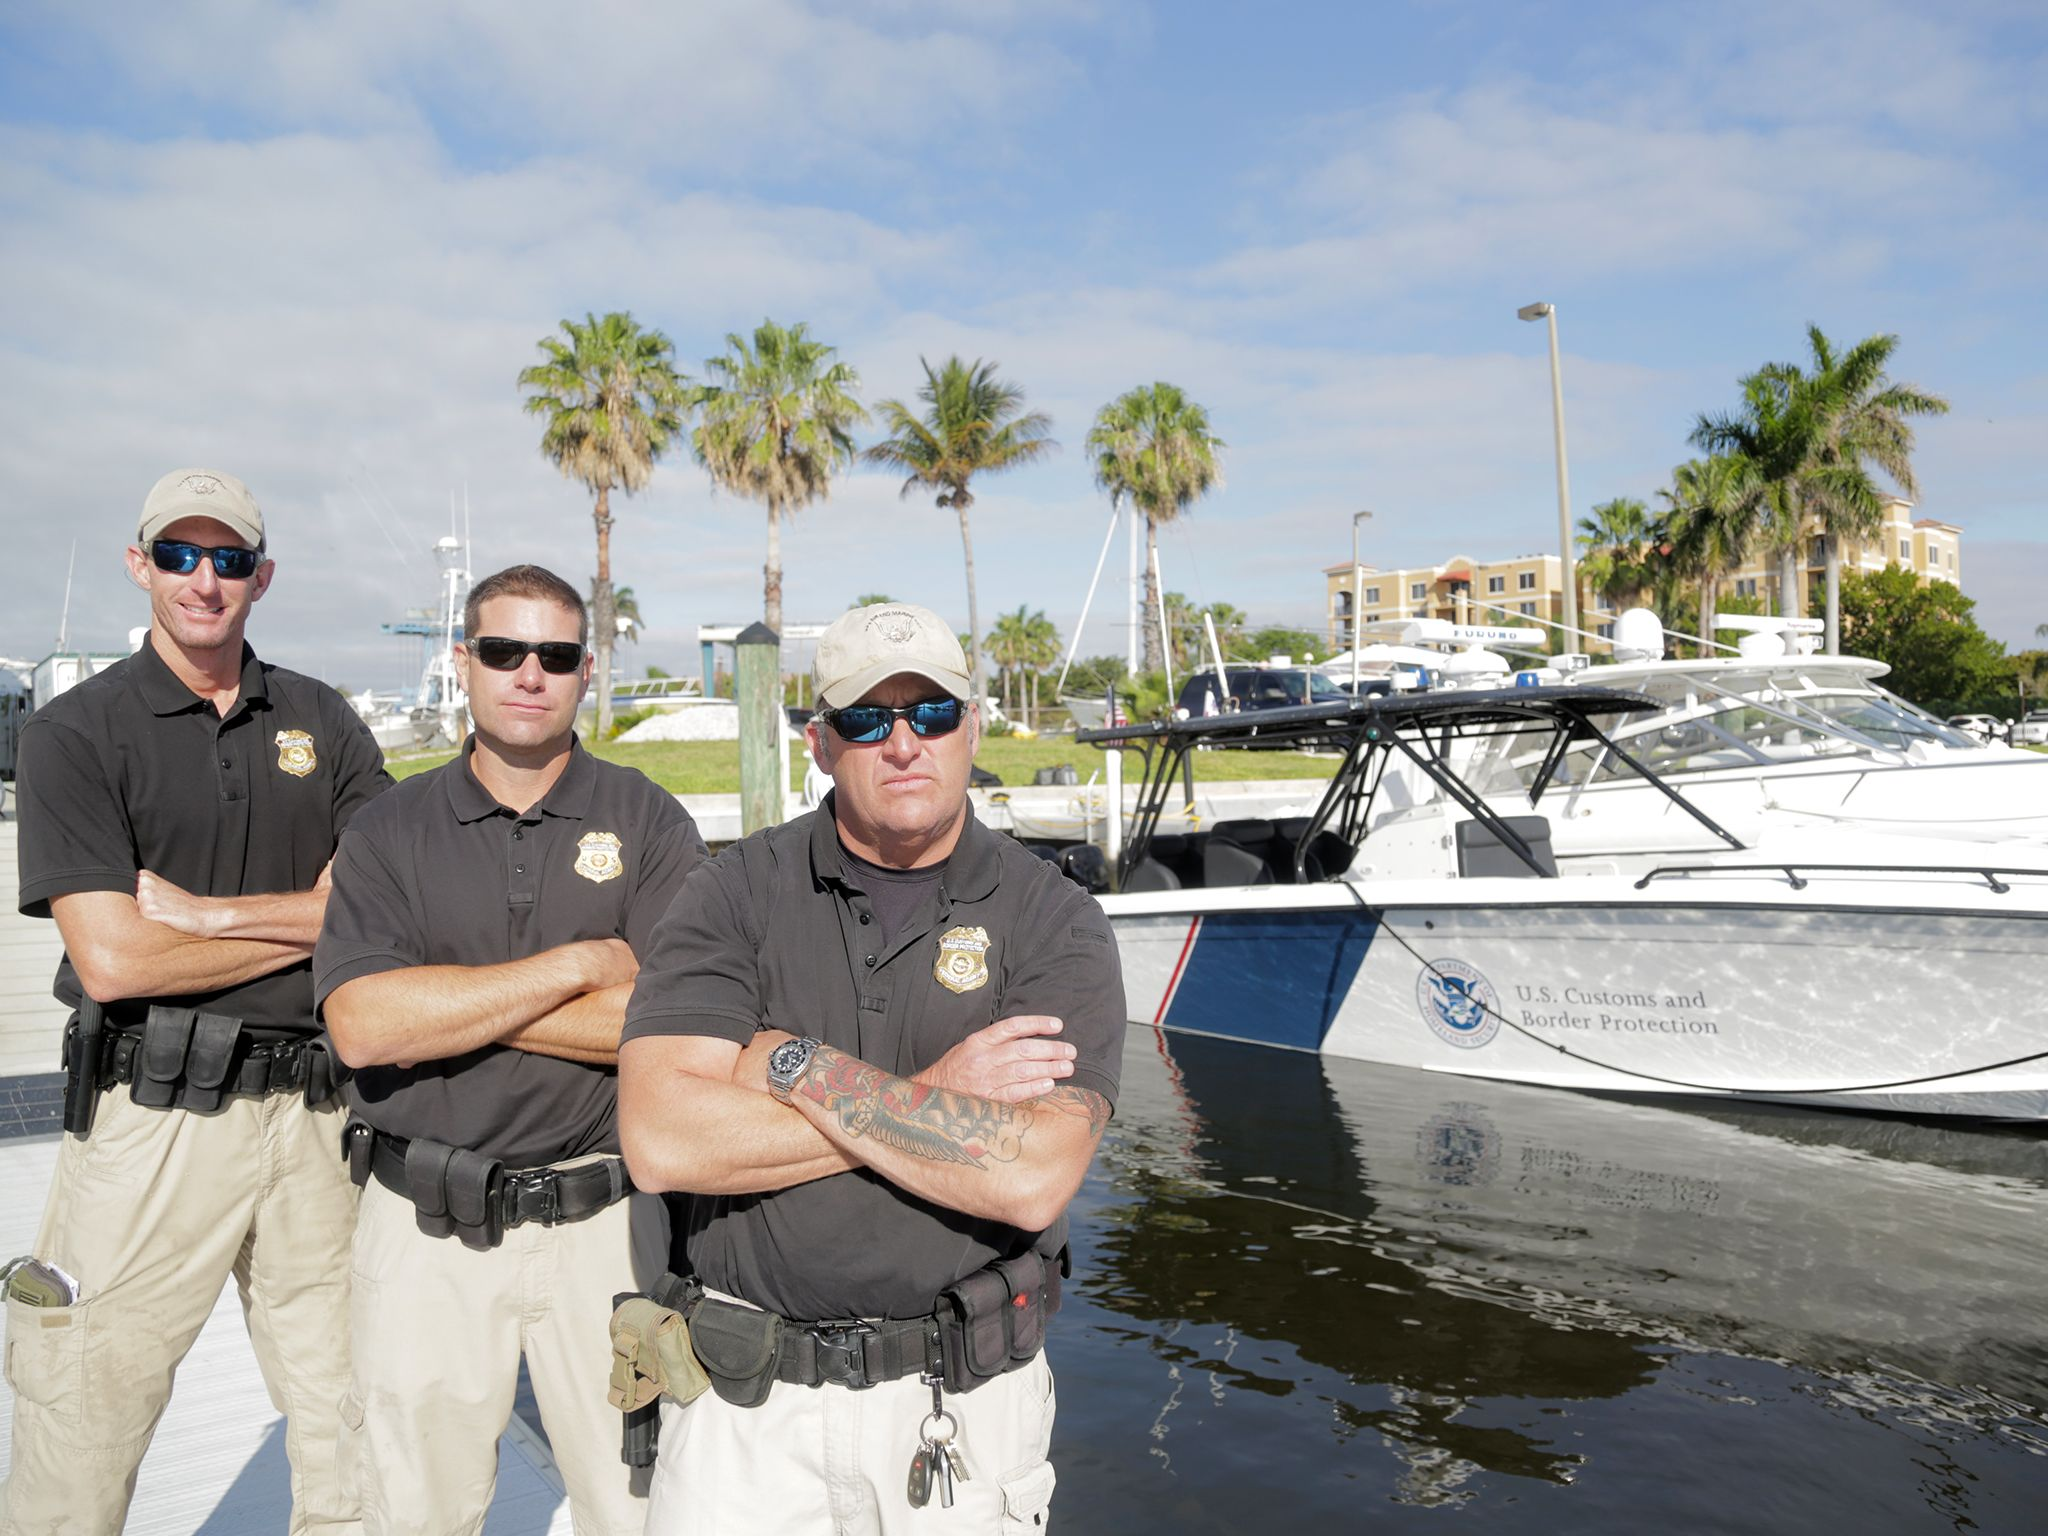 West Palm Beach, Fla.: Jack Creaig Custom Border Protection Commander and crew by their boat in... [Photo of the day - January 2015]